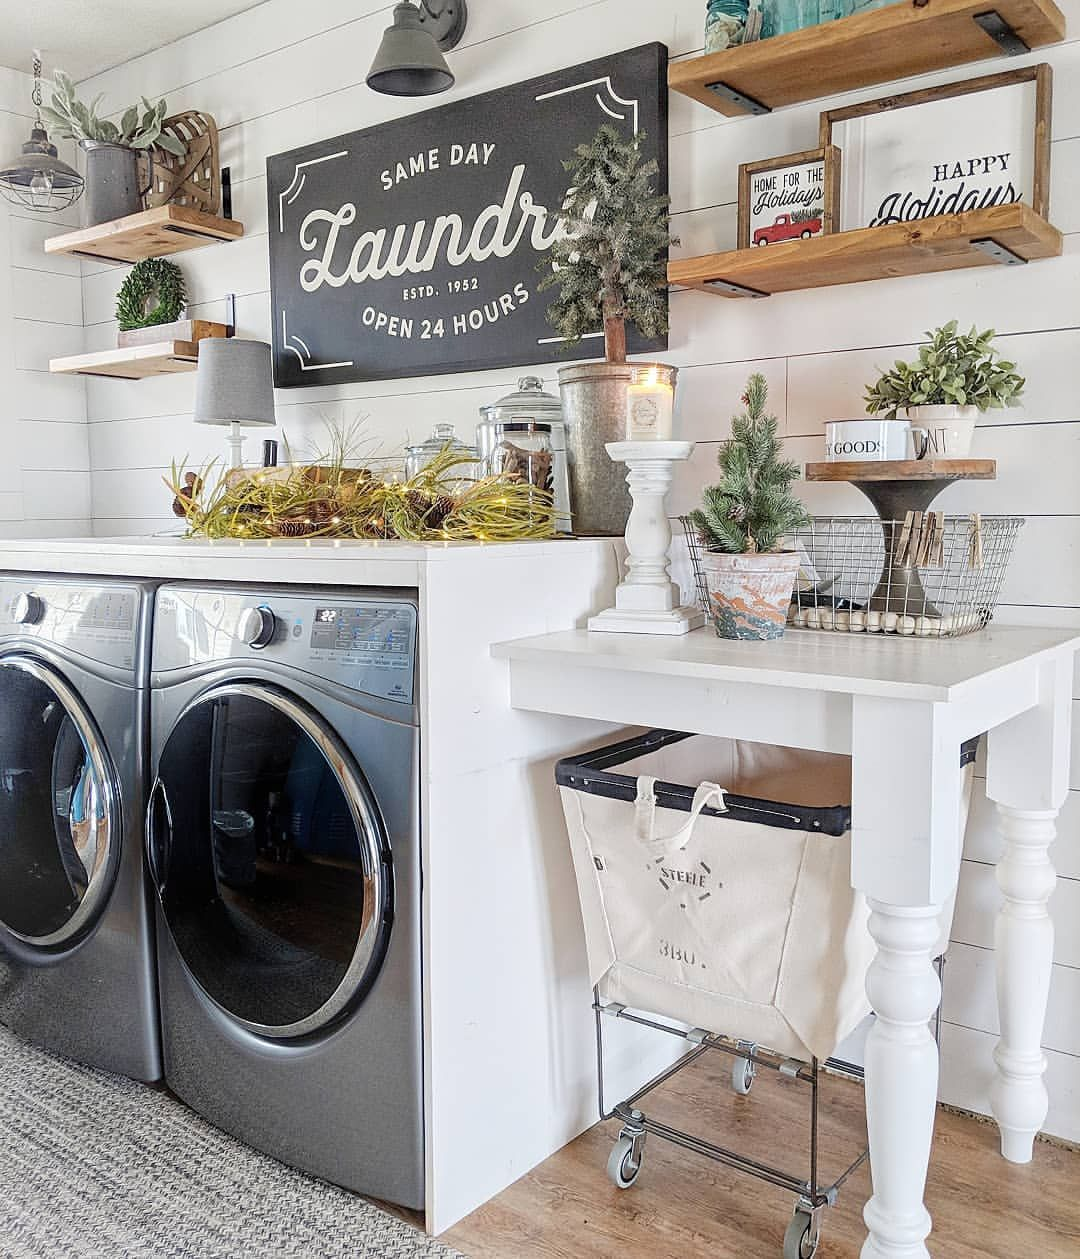 Farmhouse style laundry room with shiplap walls, open wood